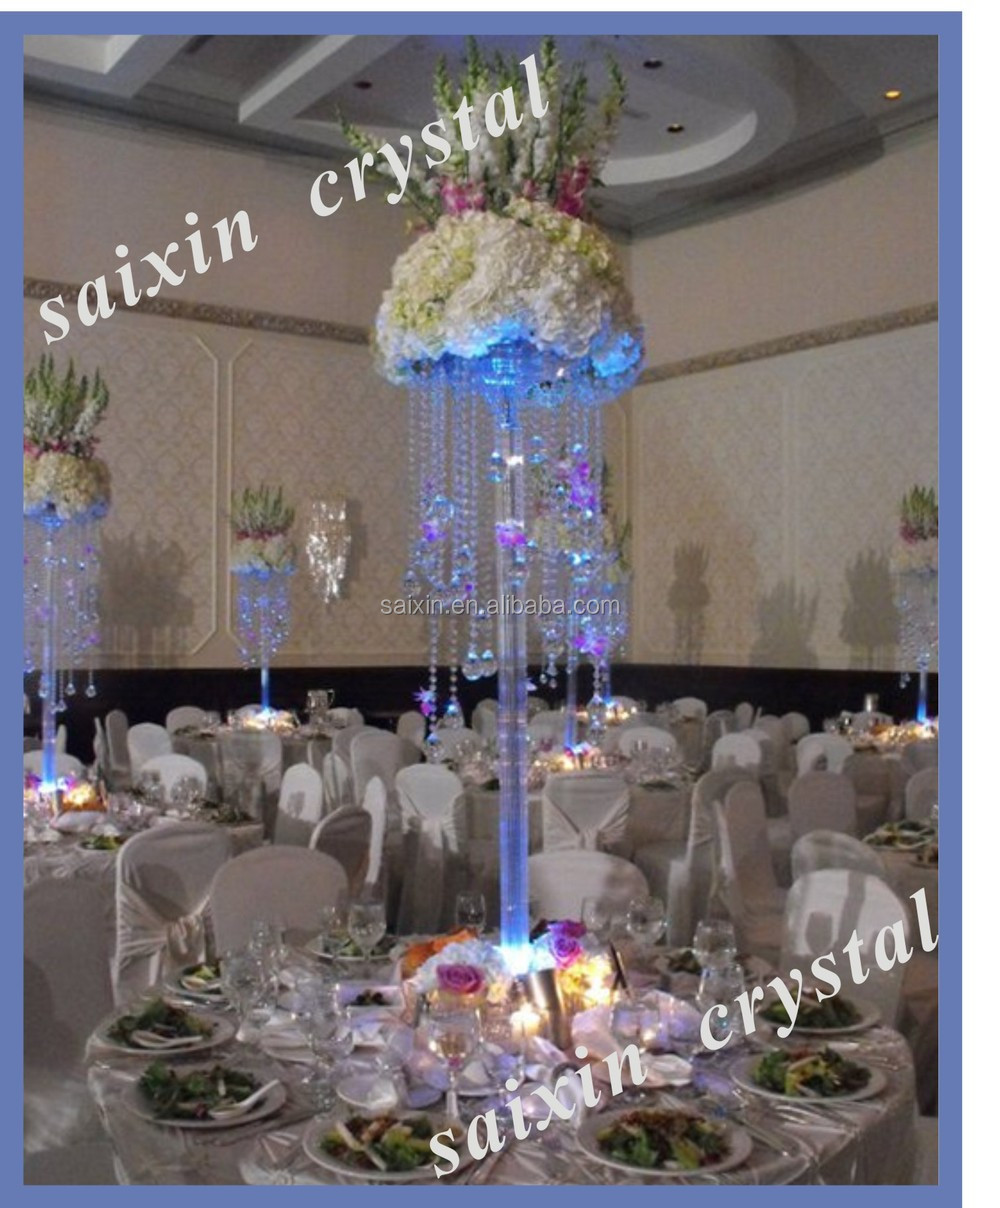 Guangzhou wedding market wholesale wedding decoration buy more junglespirit Images